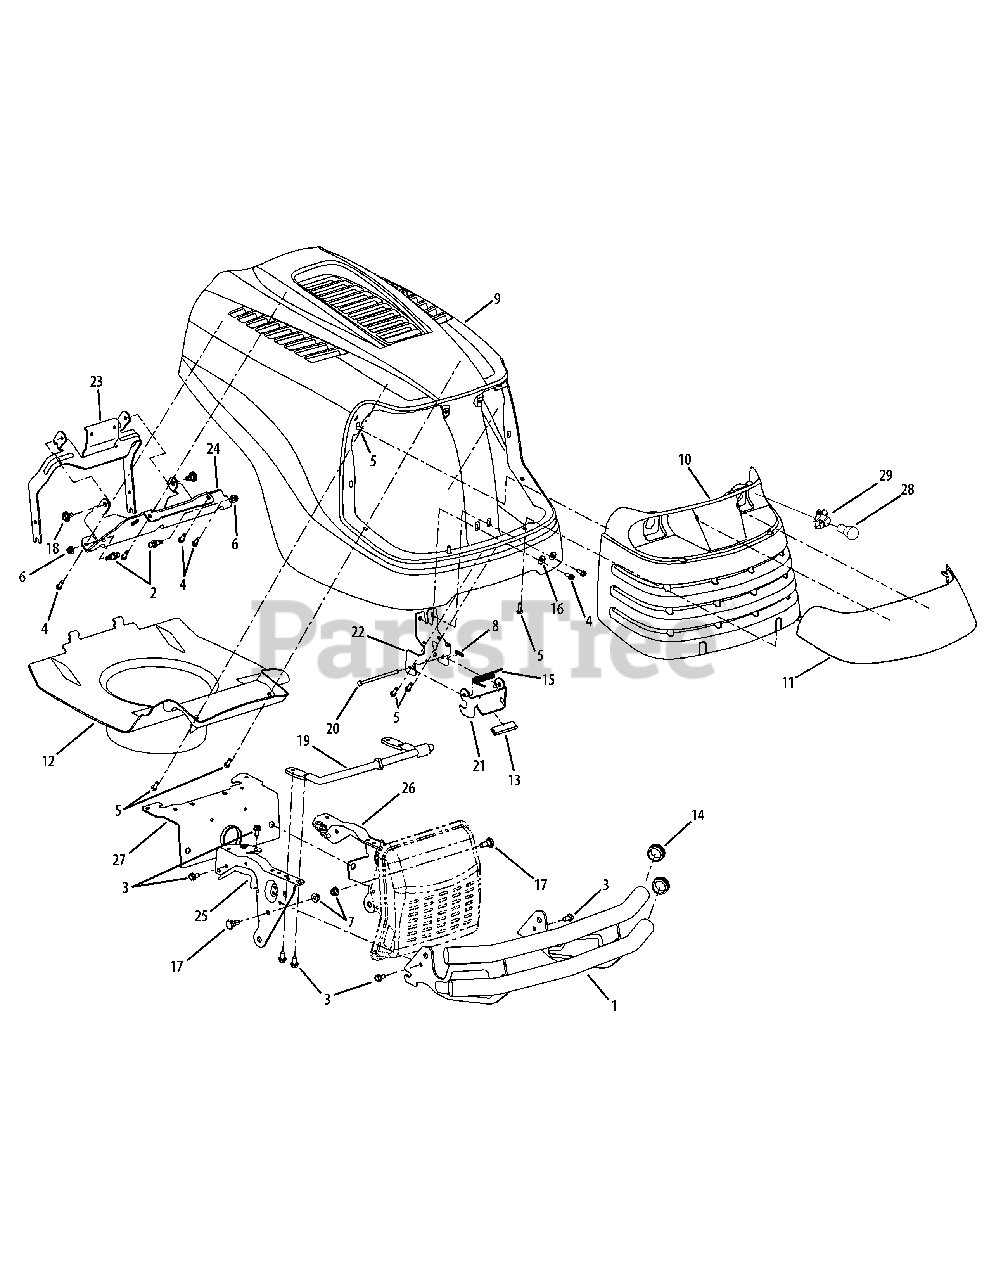 Cub Cadet Parts On The Hood  U0026 Grille Diagram For Slt 1550